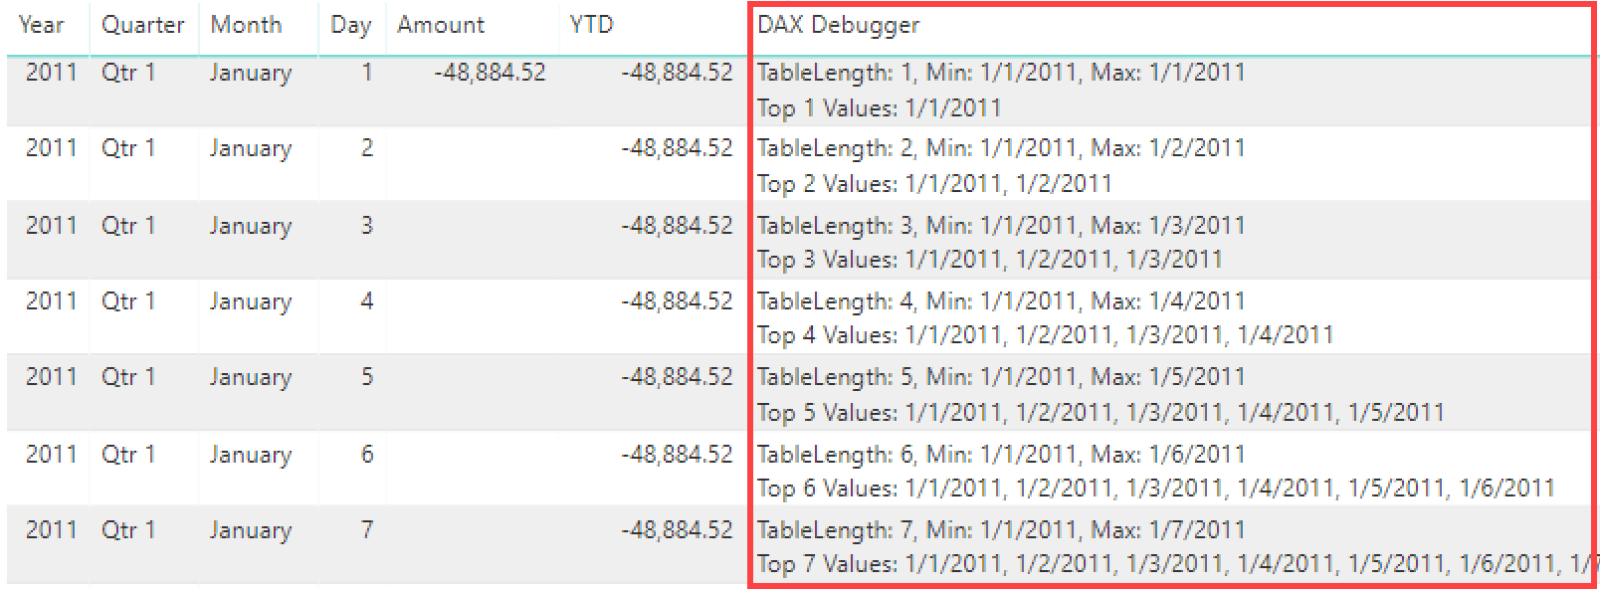 DAX CALCULATE Debugger – The BIccountant